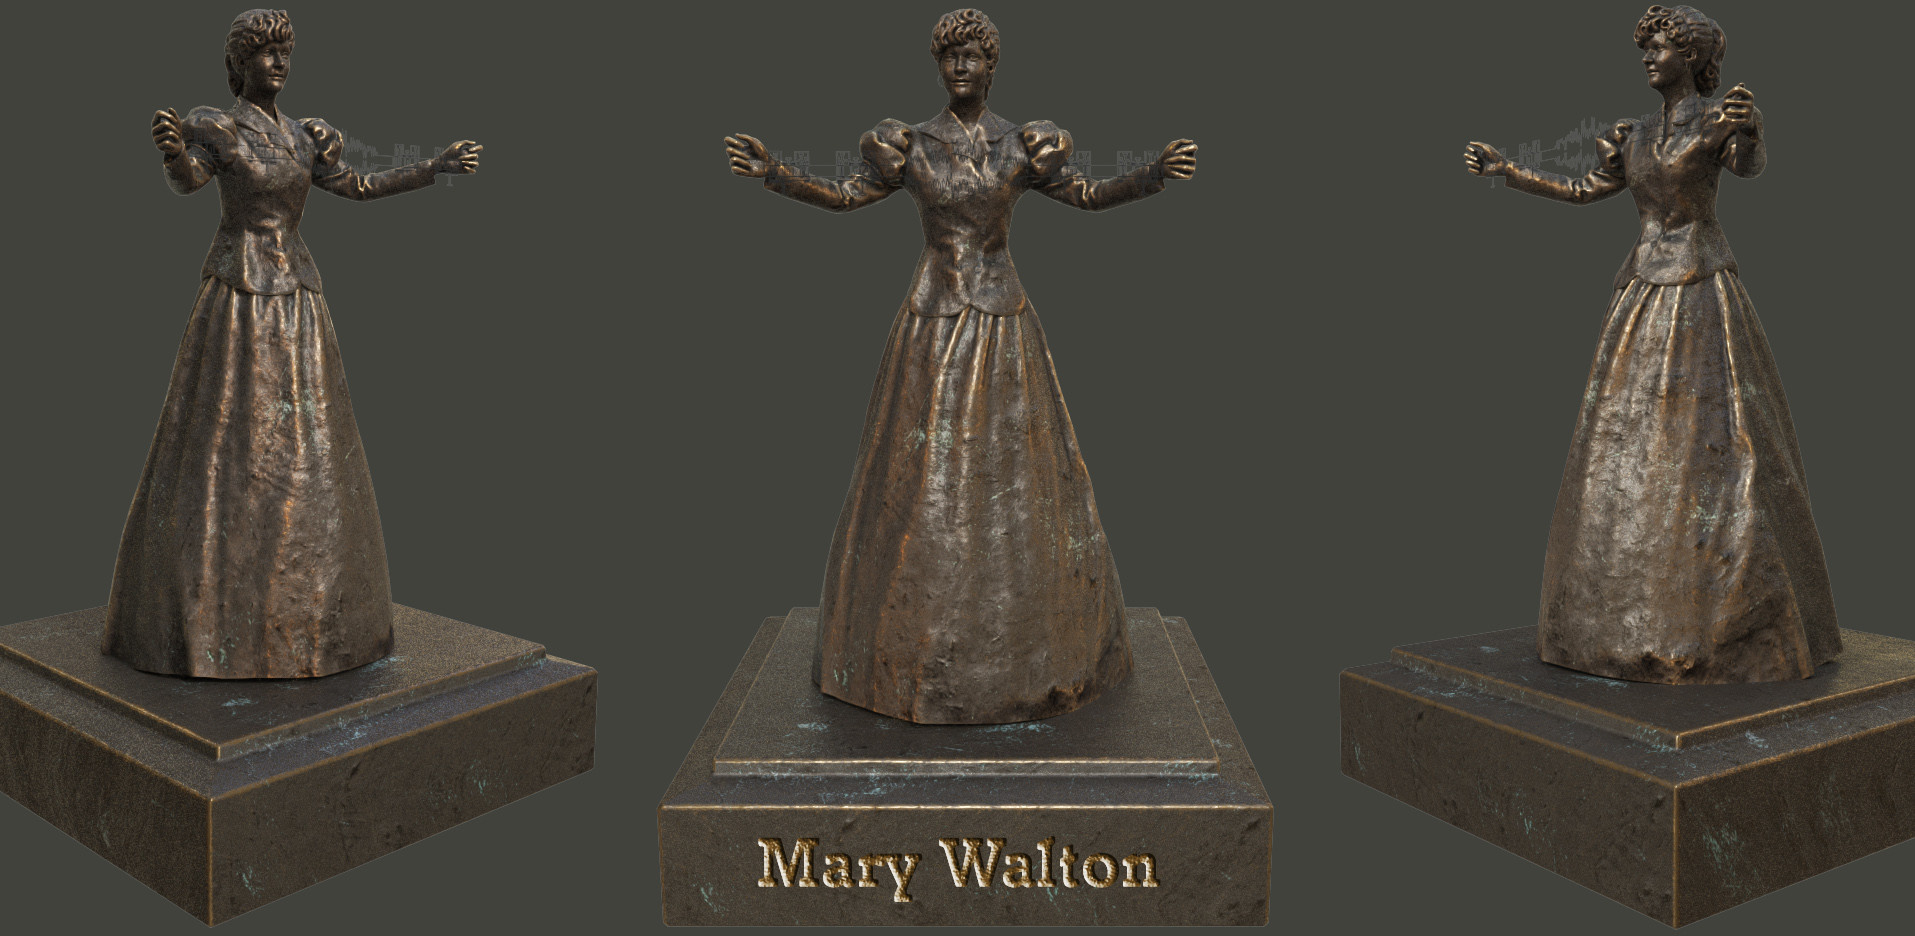 Mary Walton, inventor & engineer.